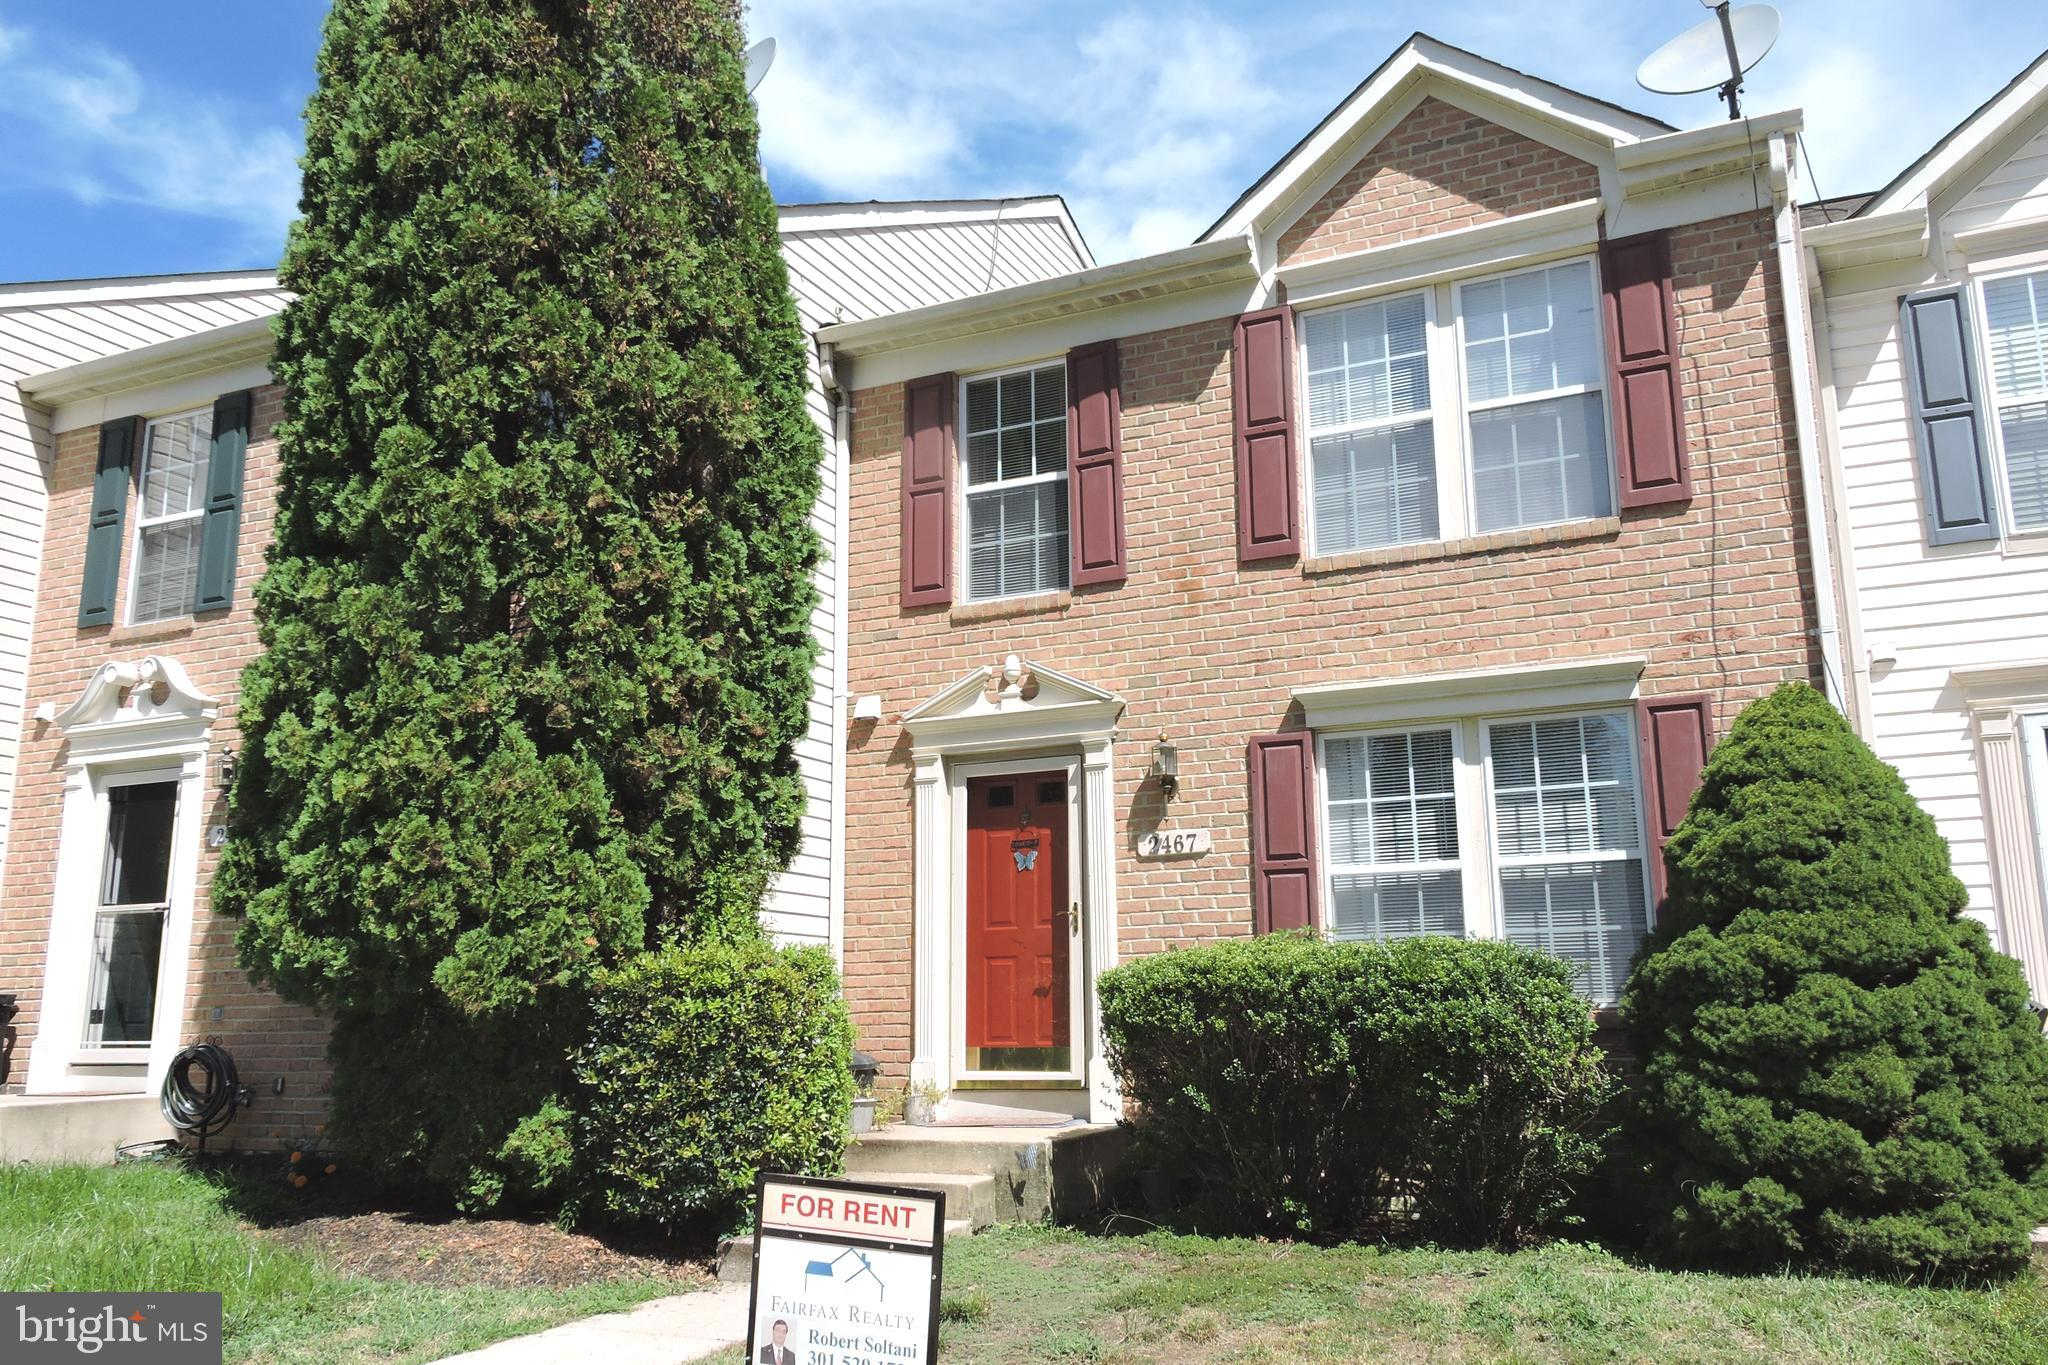 Another Property Rented - 2467 Green Leaf Terrace, Chesapeake Beach, MD 20732